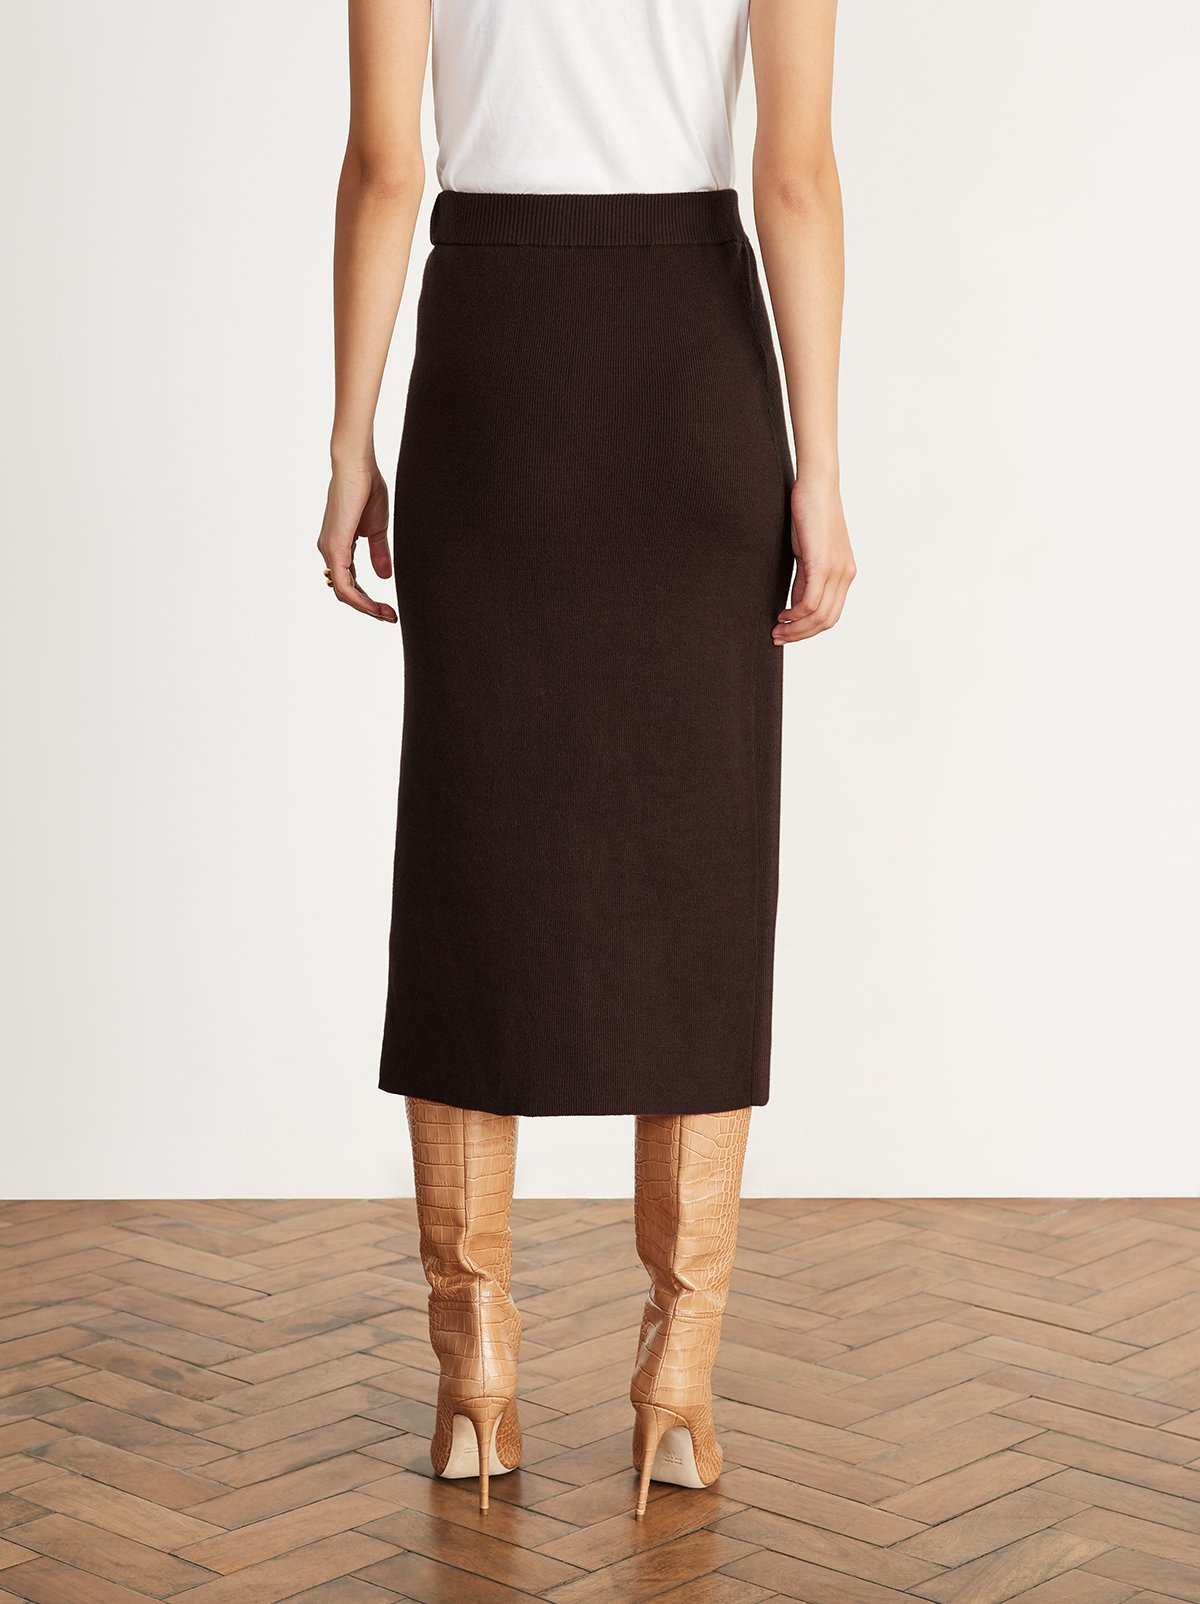 Felicia Brown Knitted Midi Skirt by KITRI Studio